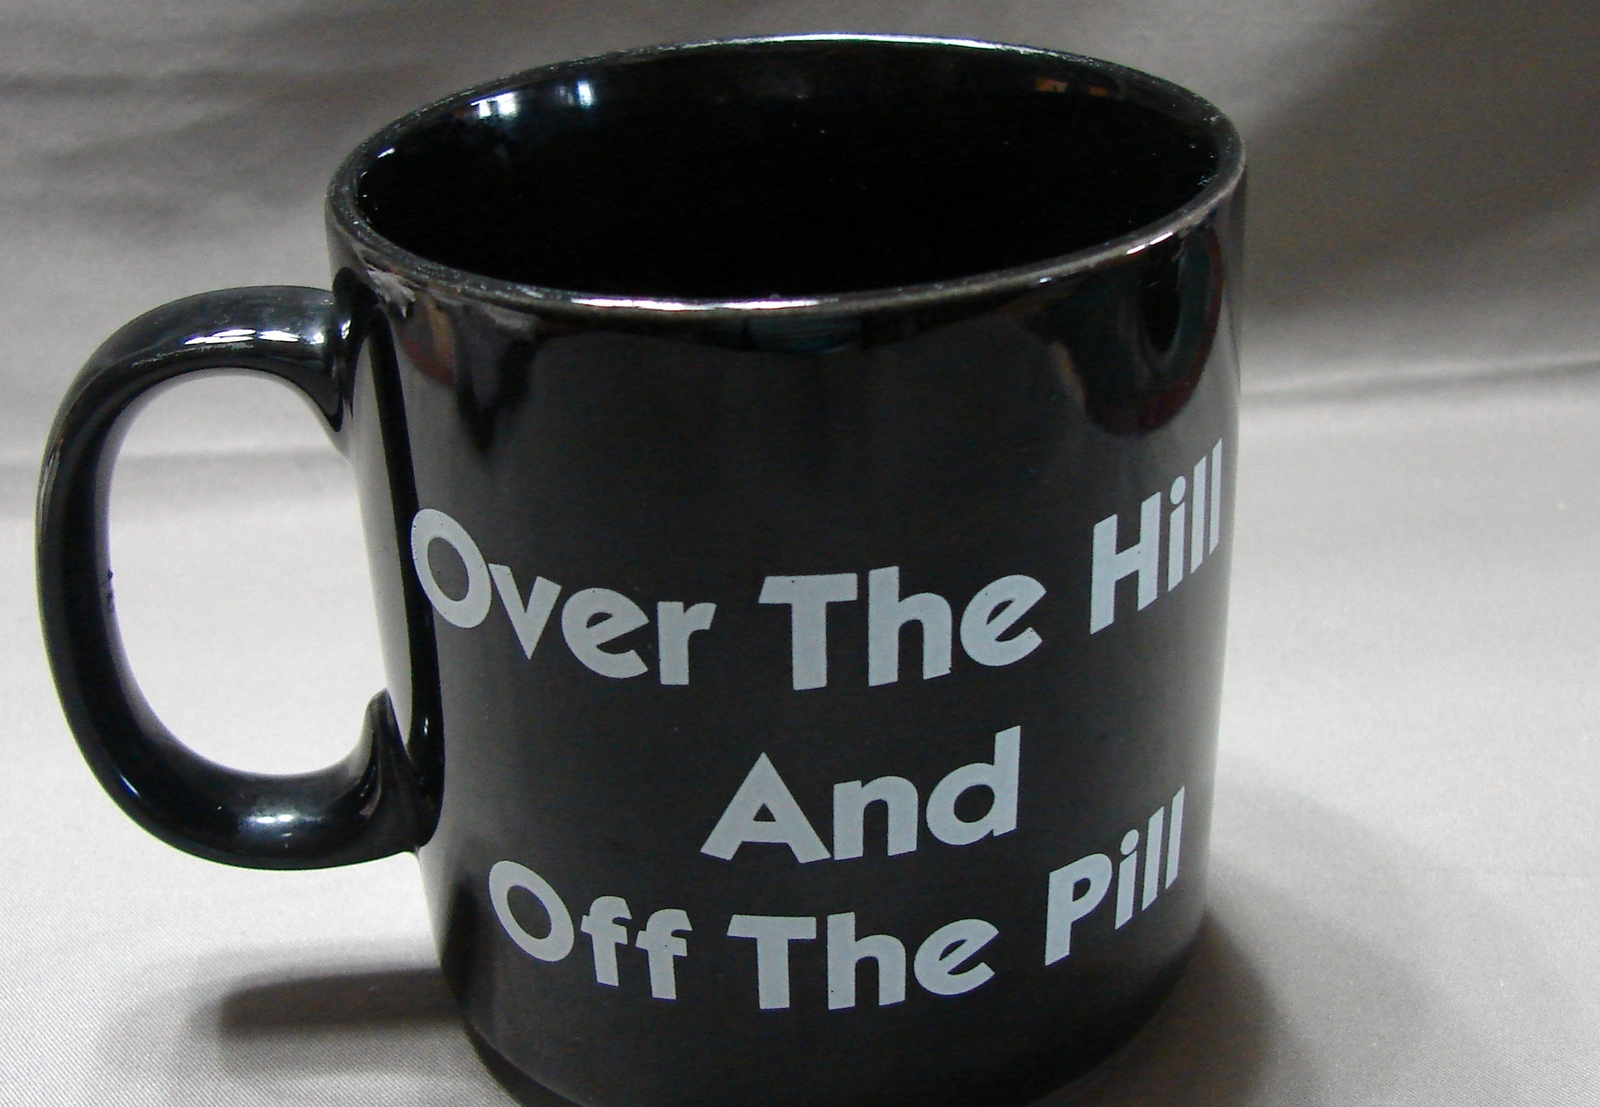 Primary image for Over The Hill And Off The Pill Coffee Mug Black from Russ Berrie